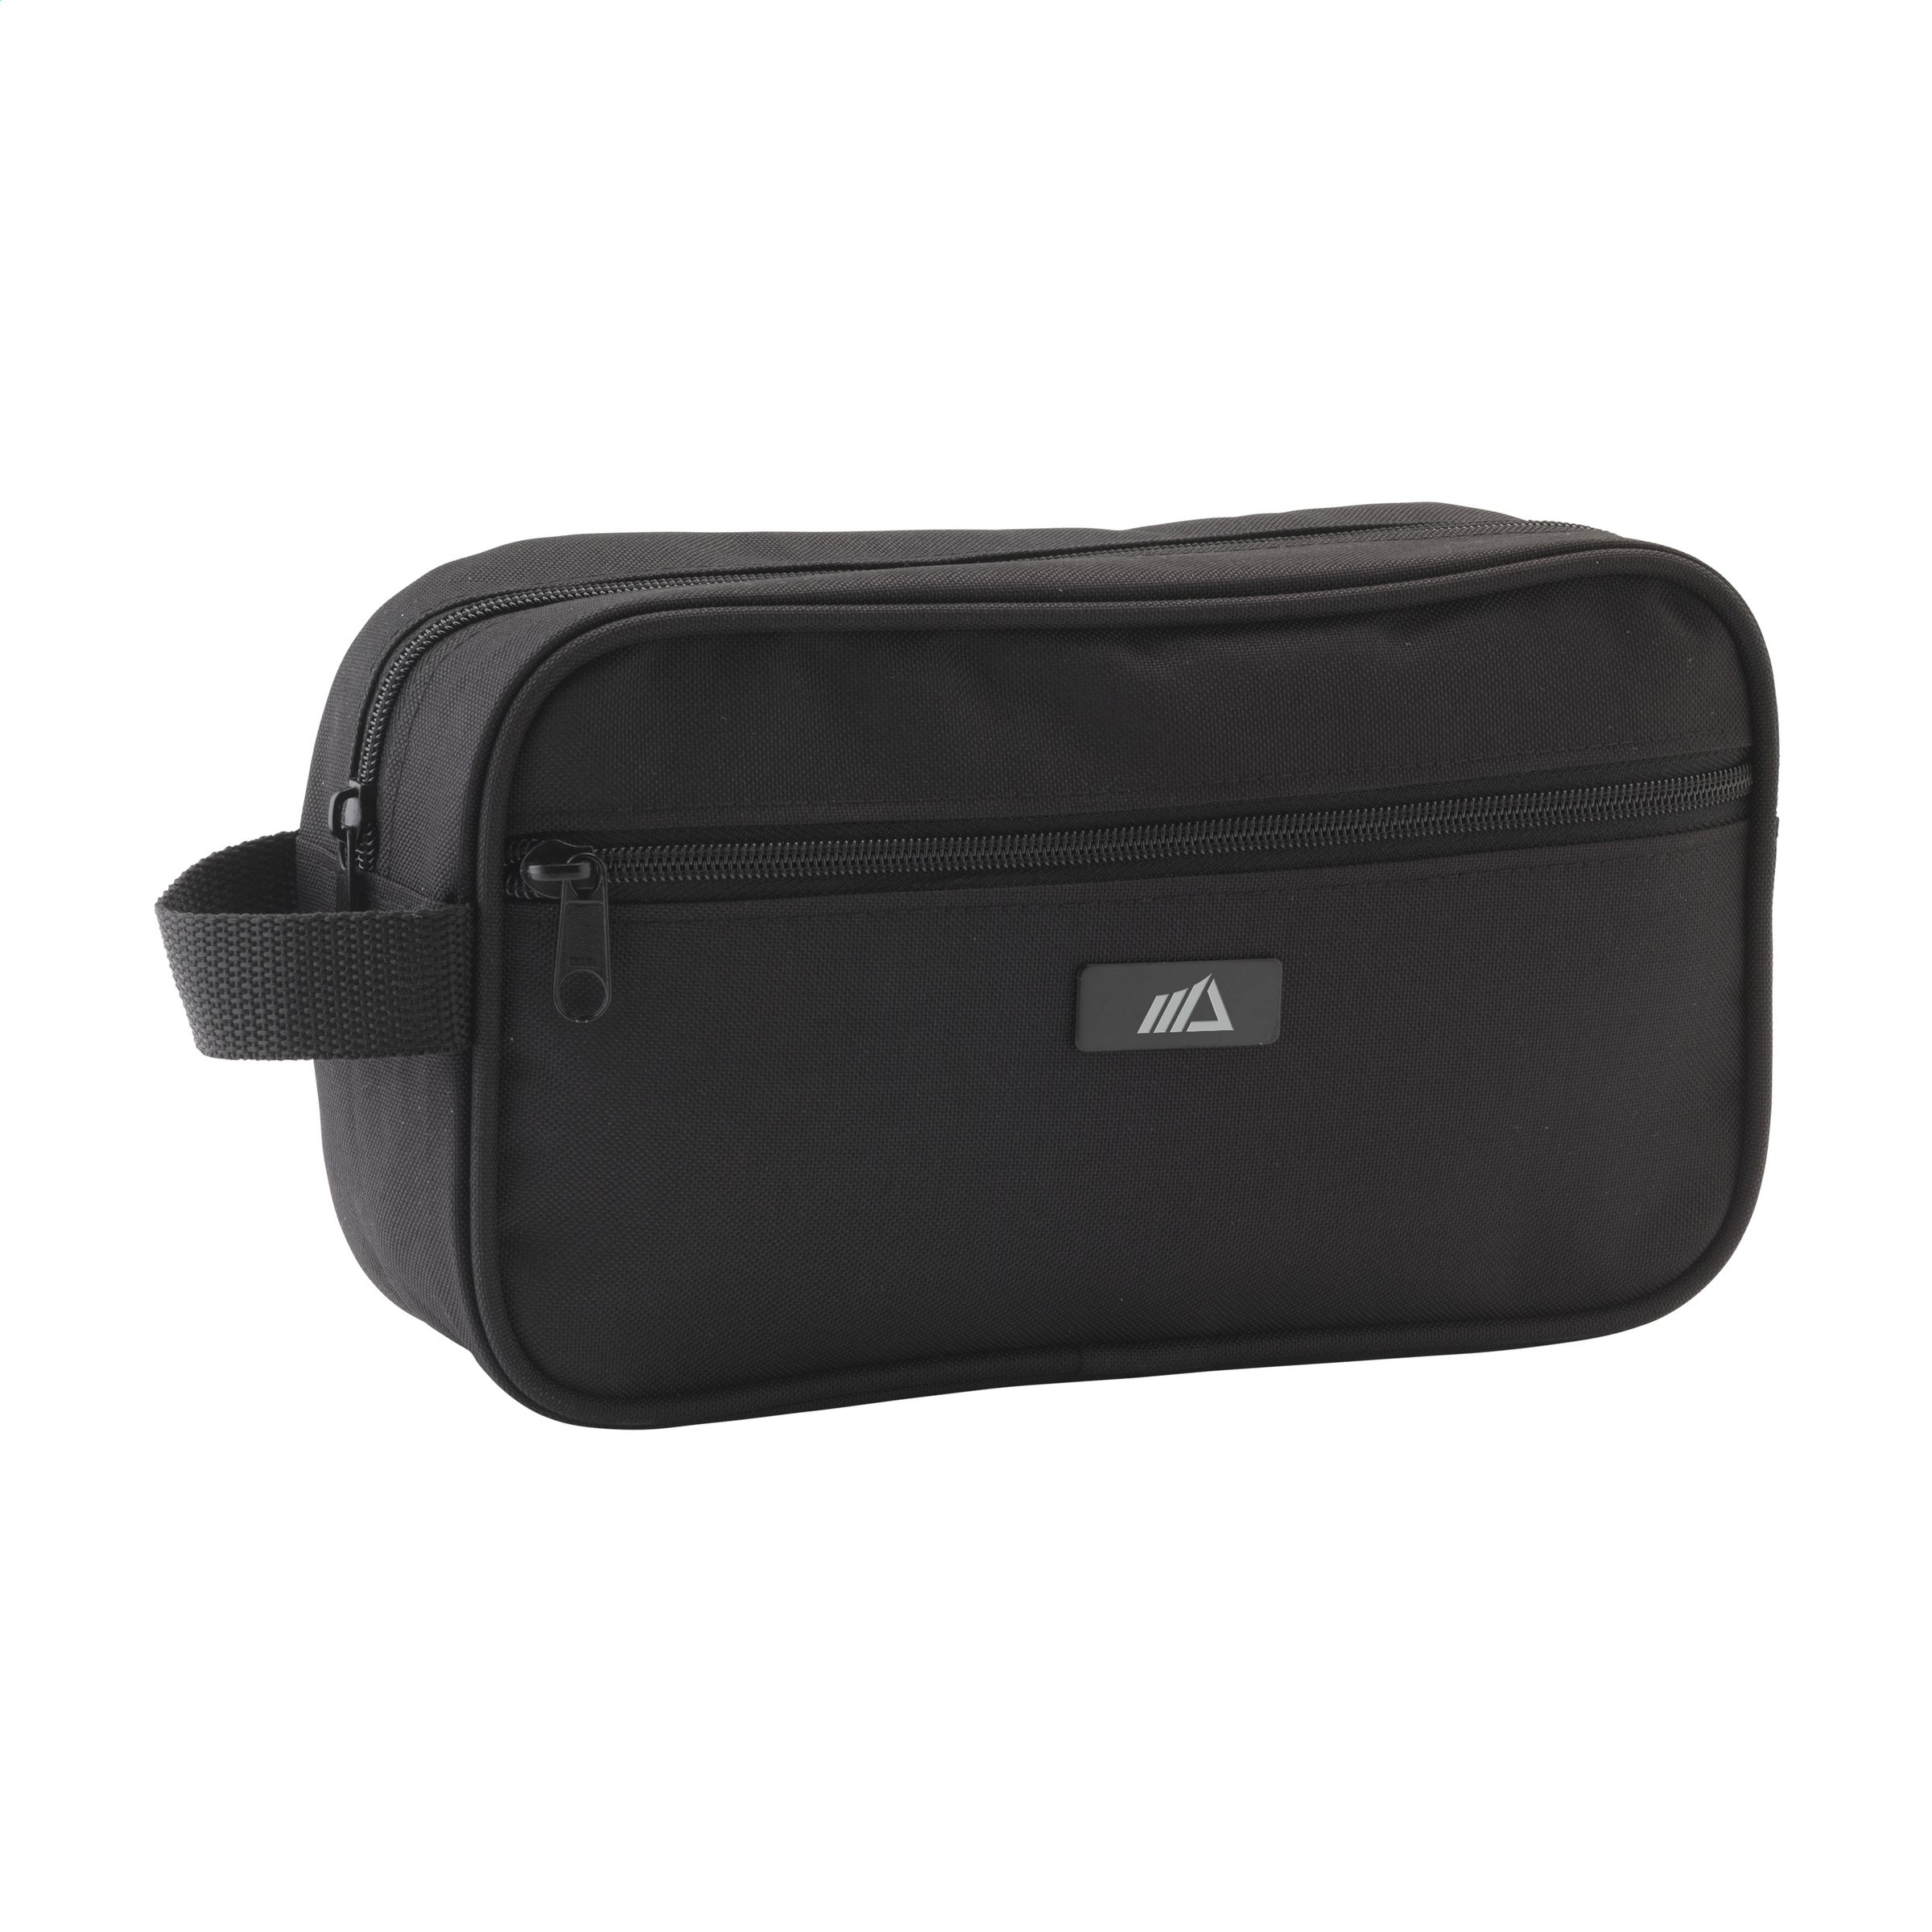 Cosmetic bag toilettas | RPET | 25 x 14 x 7 cm